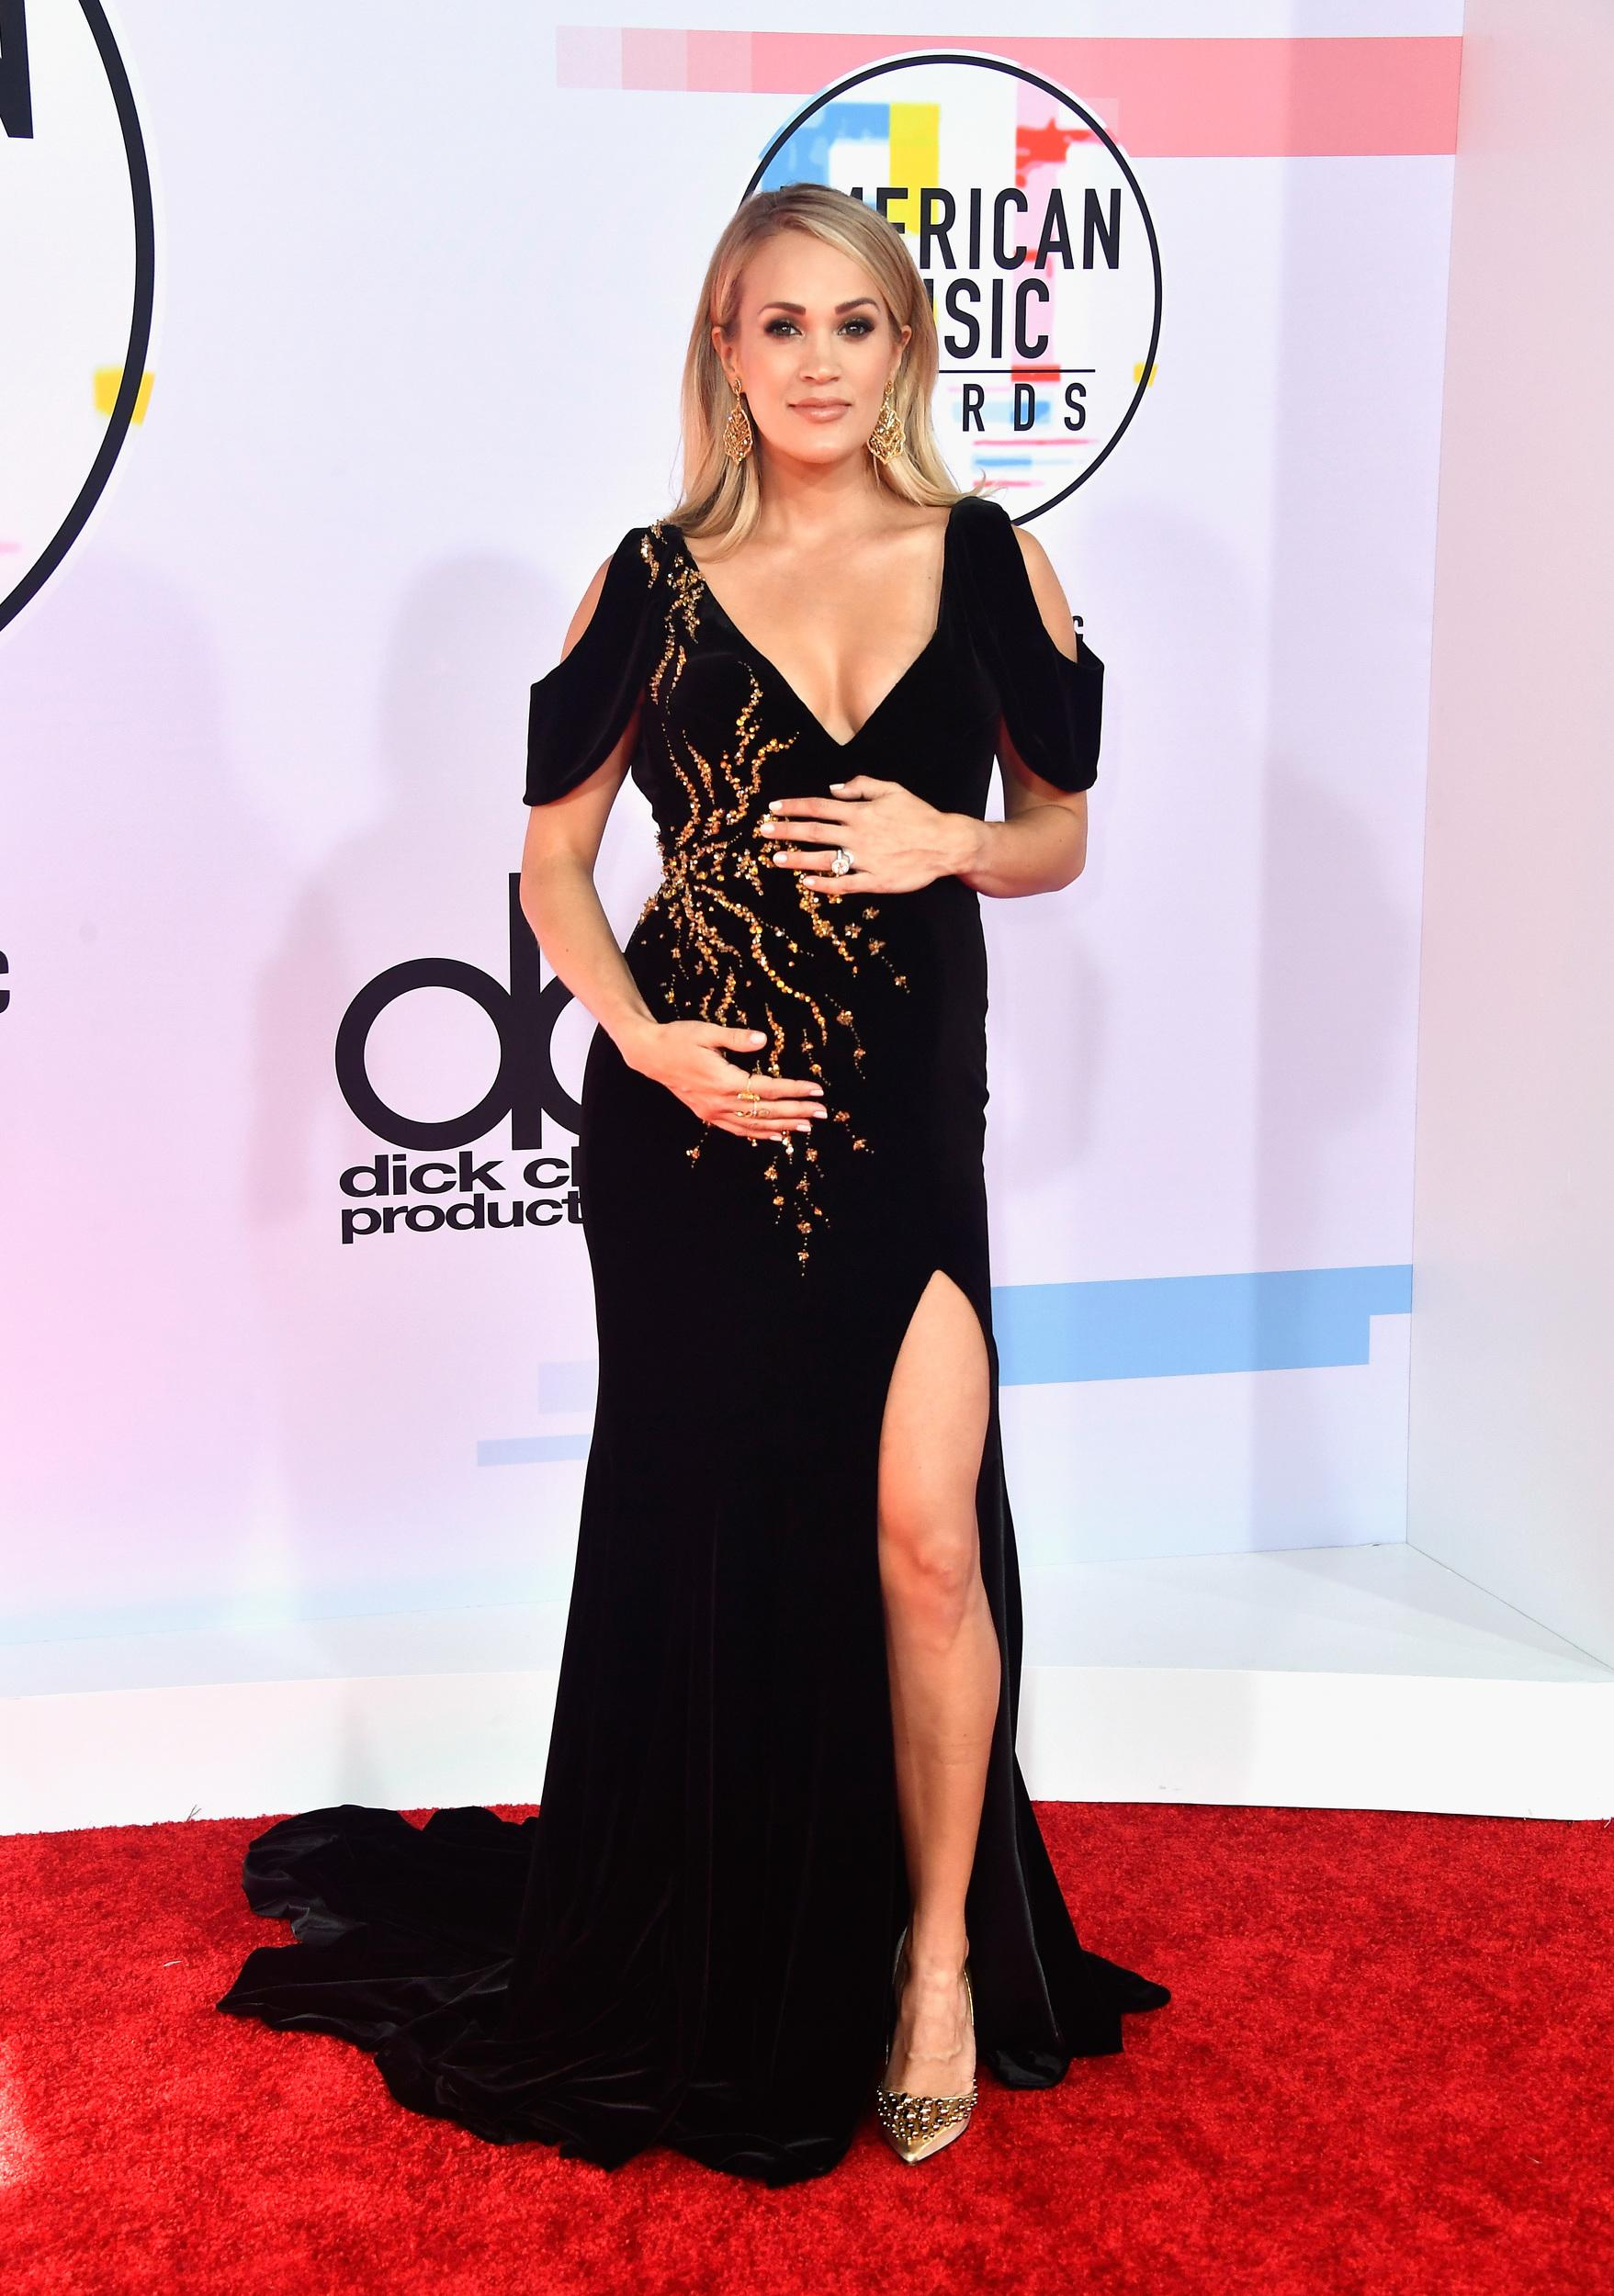 LOS ANGELES, CA - OCTOBER 09:  Carrie Underwood attends the 2018 American Music Awards at Microsoft Theater on October 9, 2018 in Los Angeles, California.  (Photo by Frazer Harrison/Getty Images)